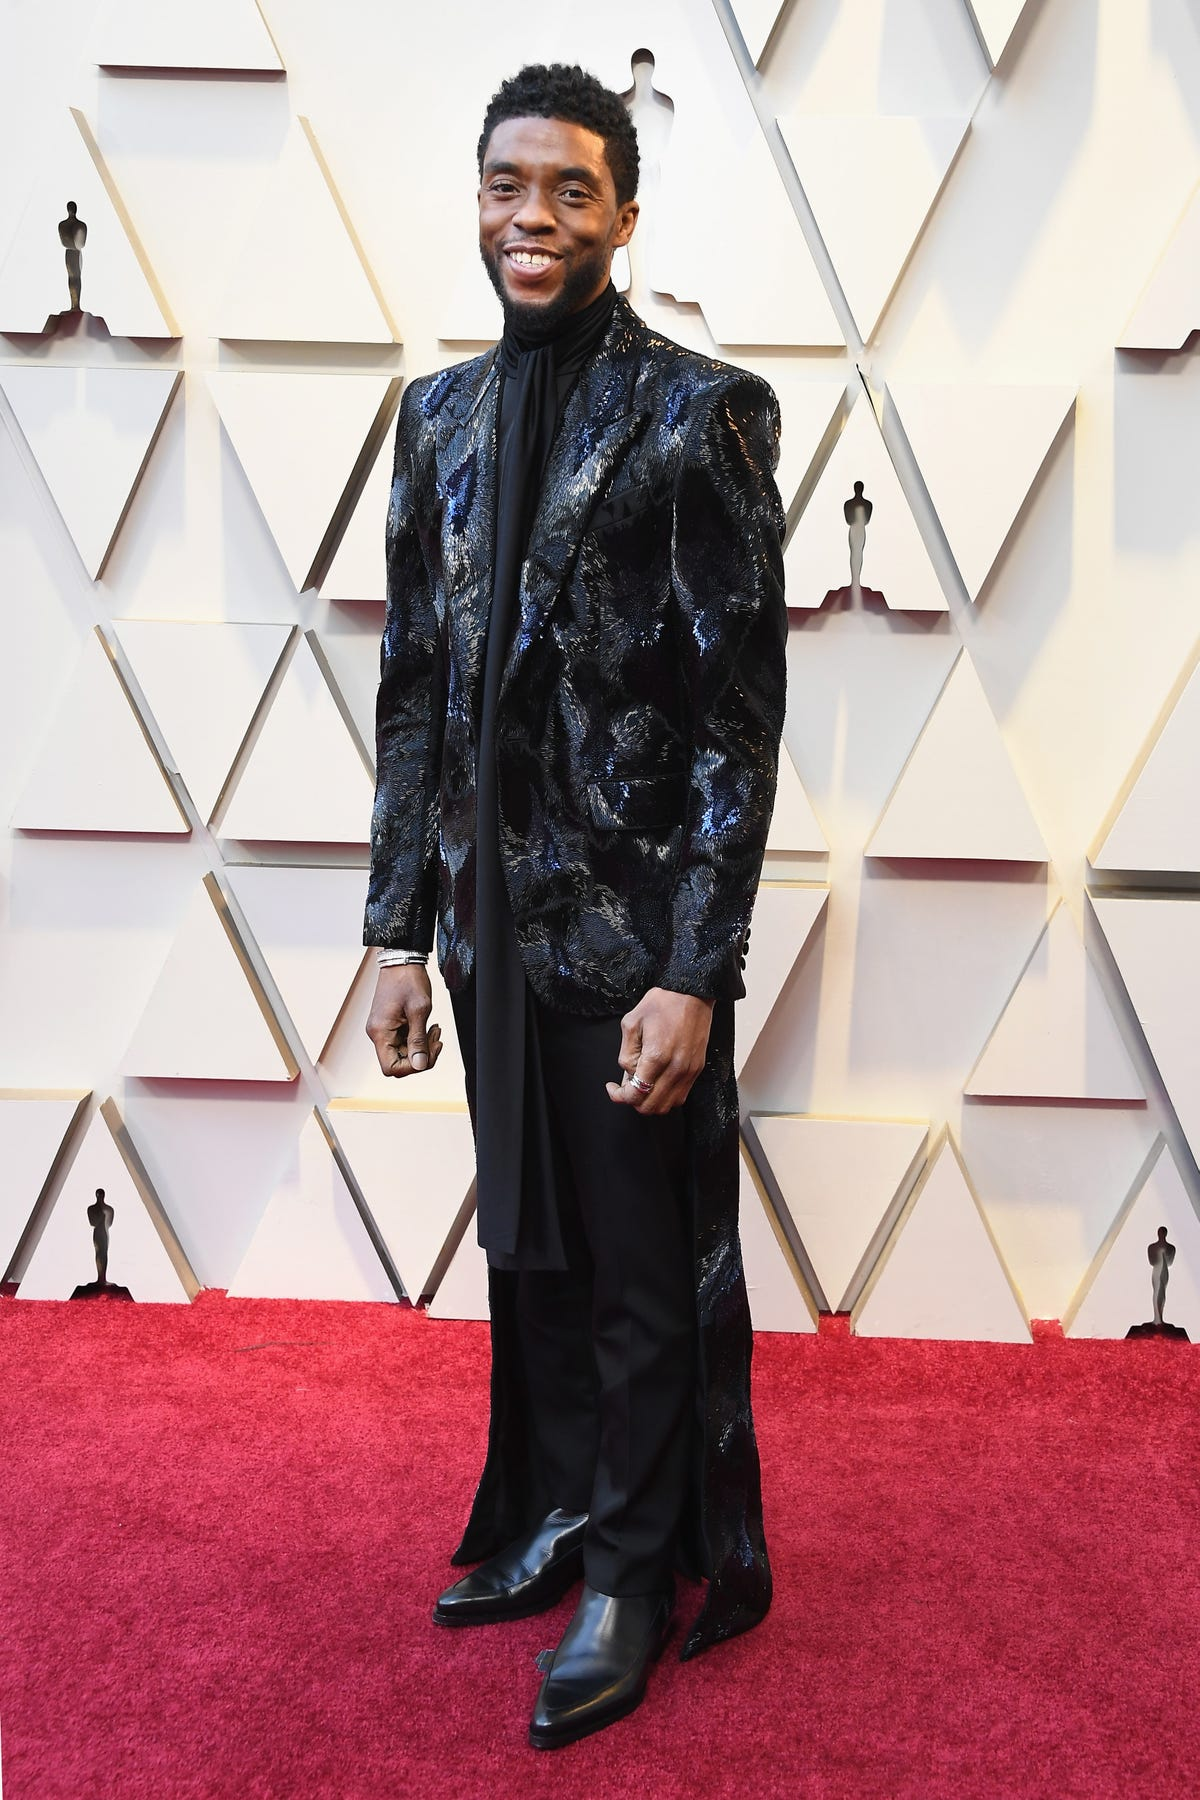 Oscars 2019 Best Dressed Celebrities On The Red Carpet